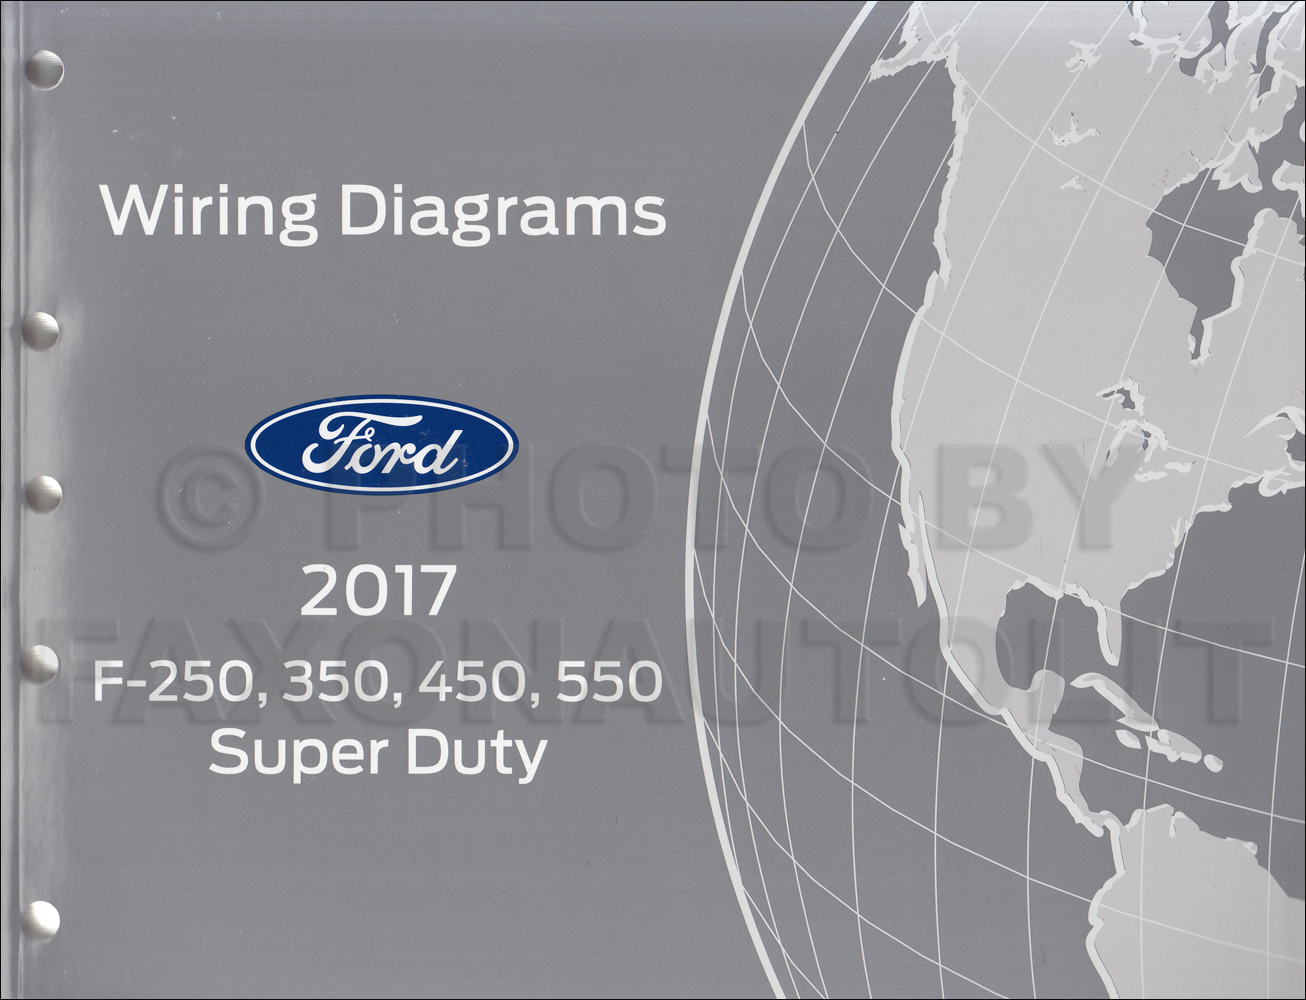 hight resolution of super duty wiring diagram diagram data schema 2012 ford super duty wiring diagram 2017 ford f250